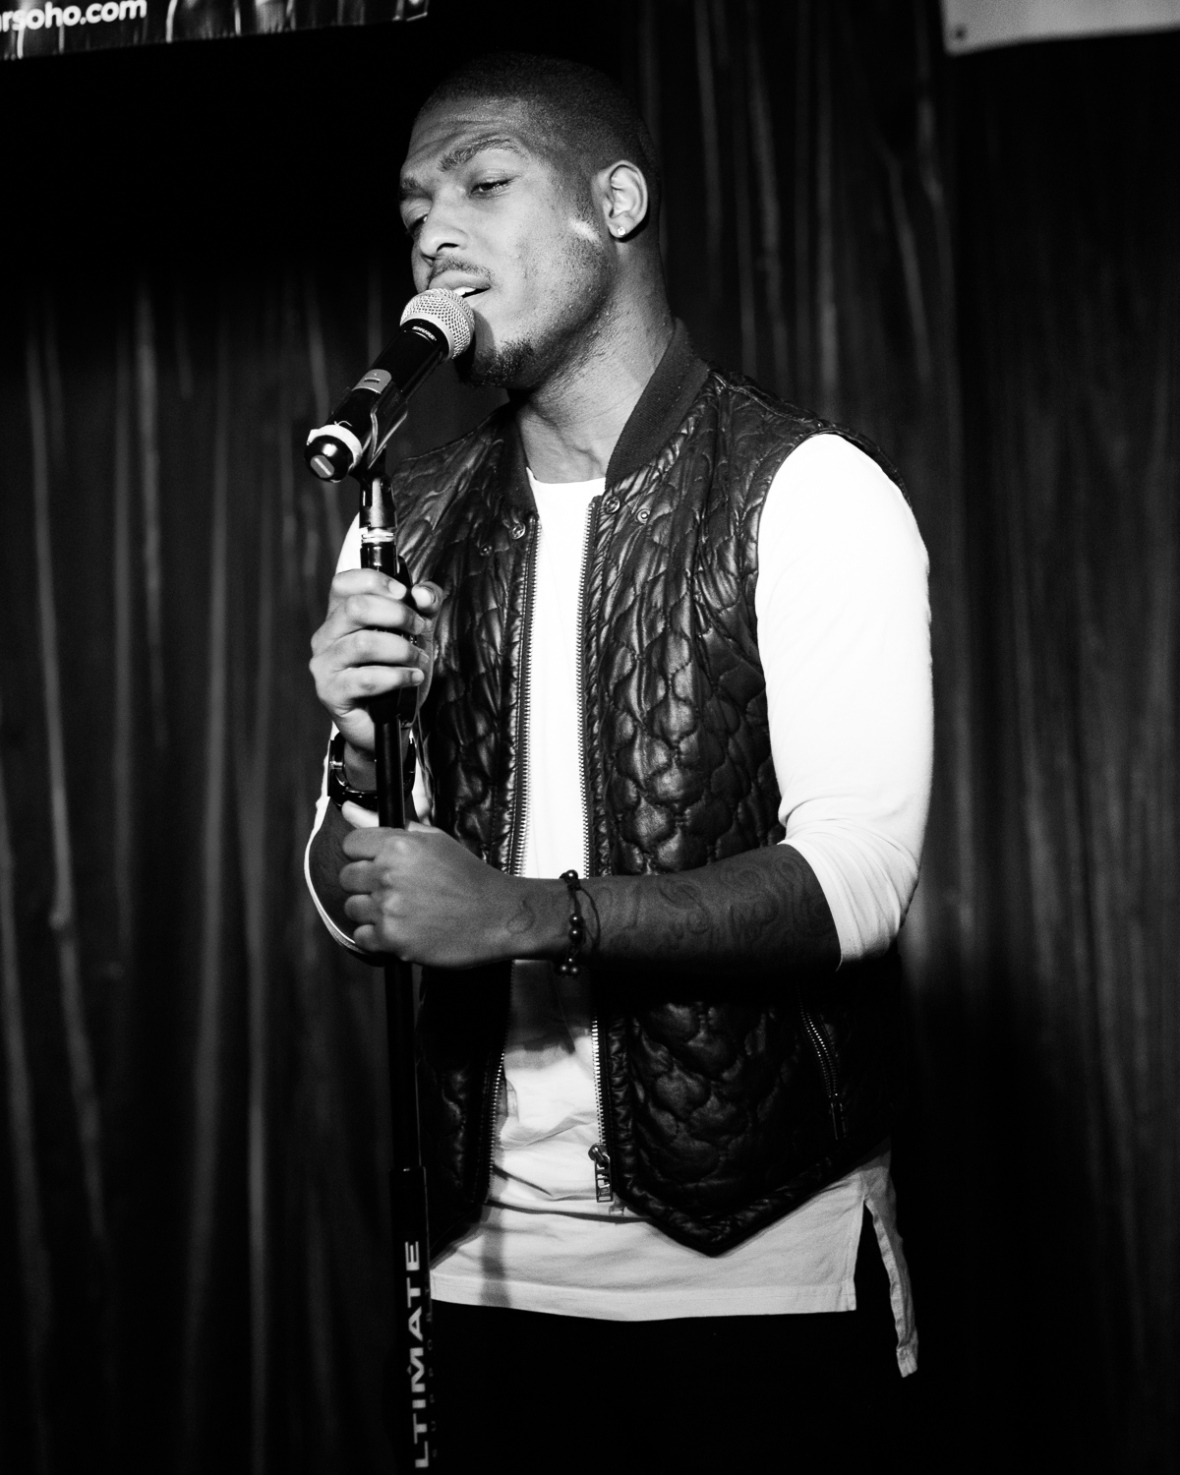 Dez Mensah performs at Pop Revue, London